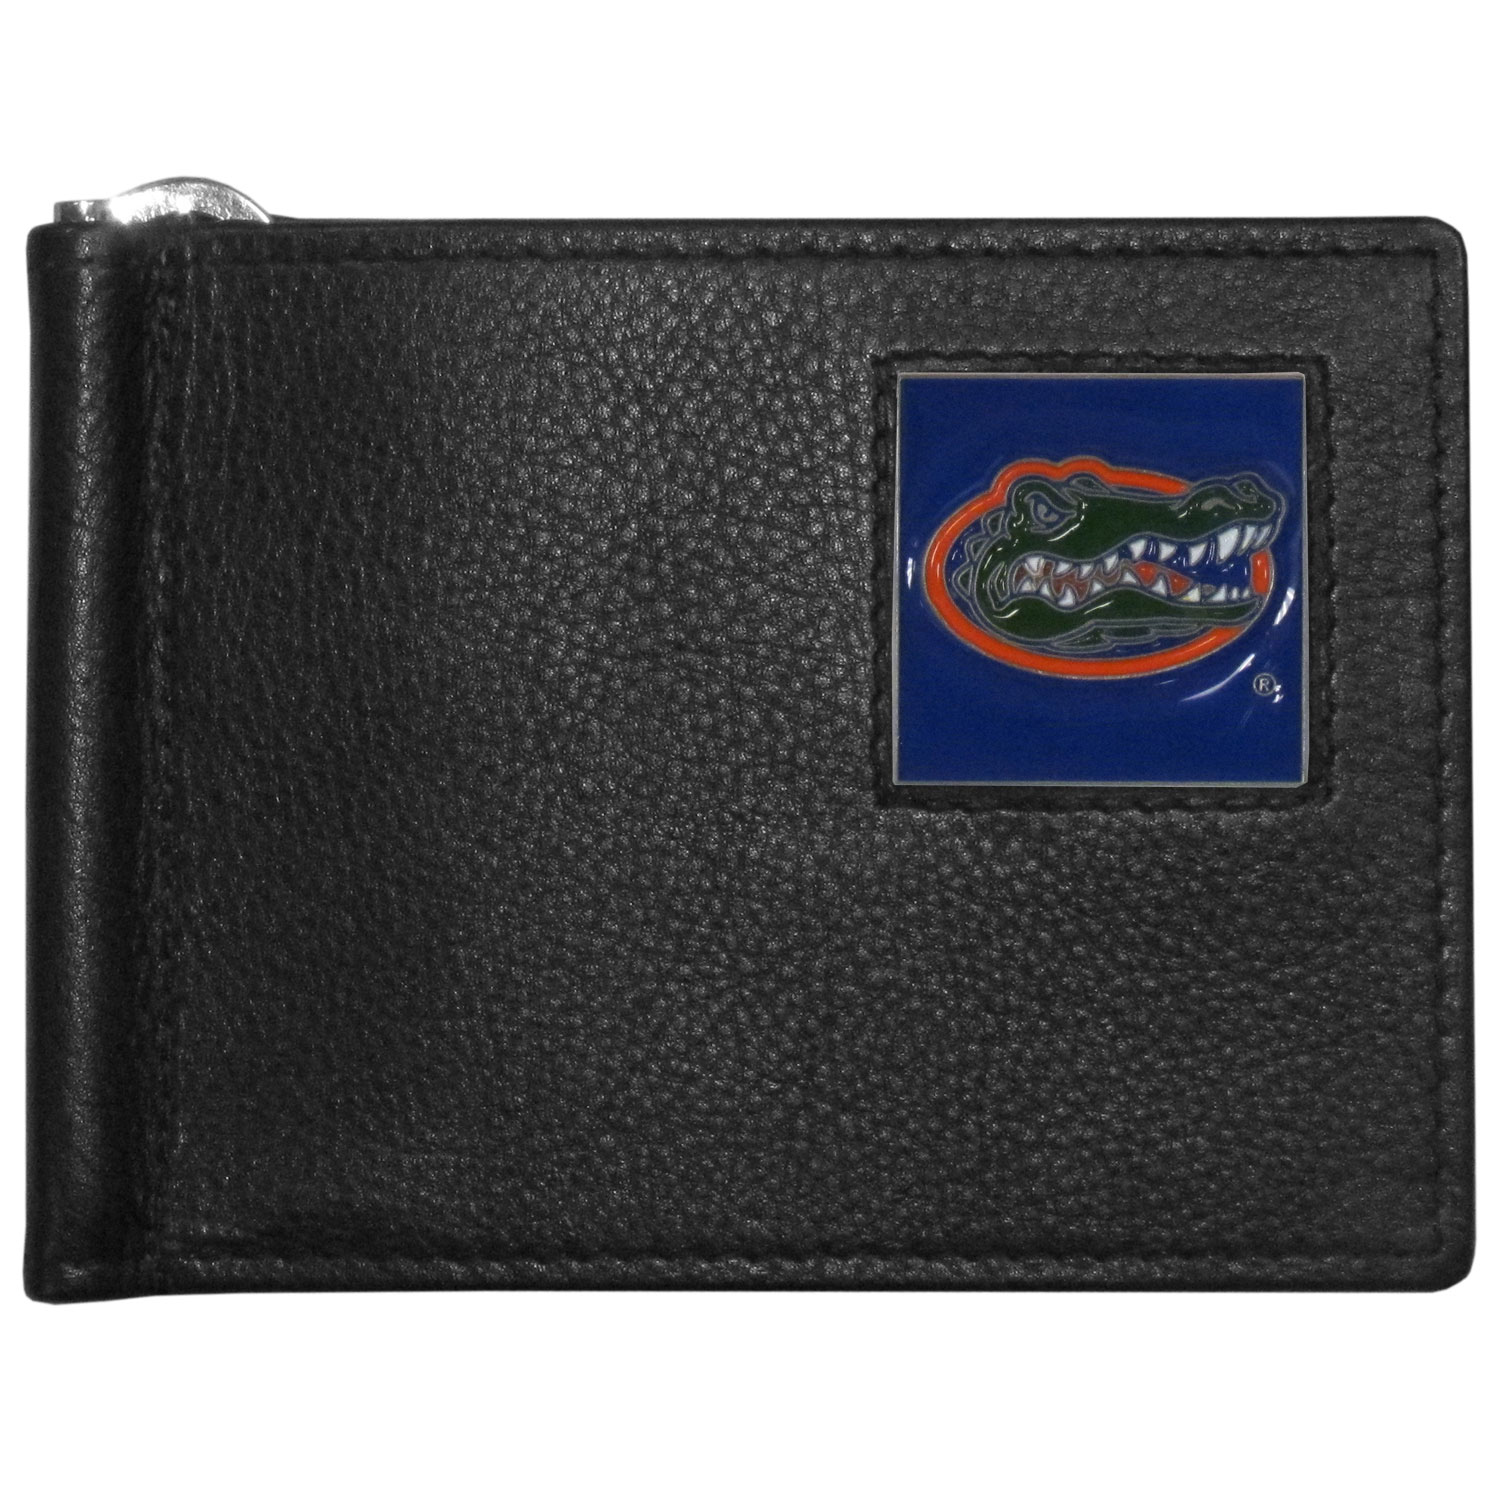 Florida Gators Leather Bill Clip Wallet - This cool new style wallet features an inner, metal bill clip that lips up for easy access. The super slim wallet holds tons of stuff with ample pockets, credit card slots & windowed ID slot. The wallet is made of genuine fine grain leather and it finished with a metal Florida Gators emblem. The wallet is shipped in gift box packaging.